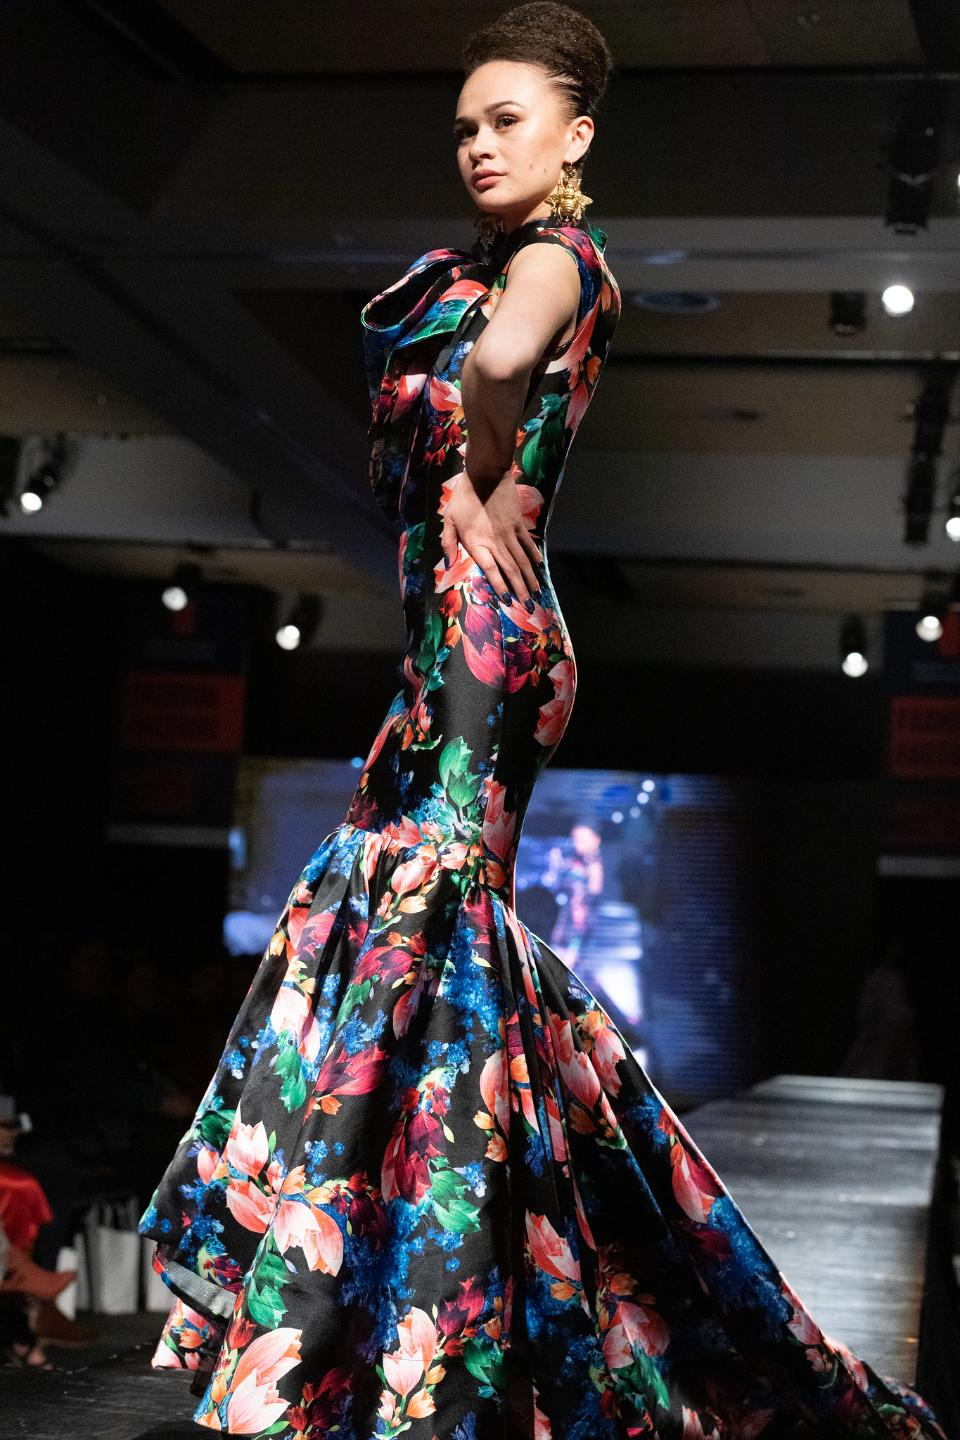 Free download high resolution image - free image free photo free stock image public domain picture  Pacific Fusion Fashion Show